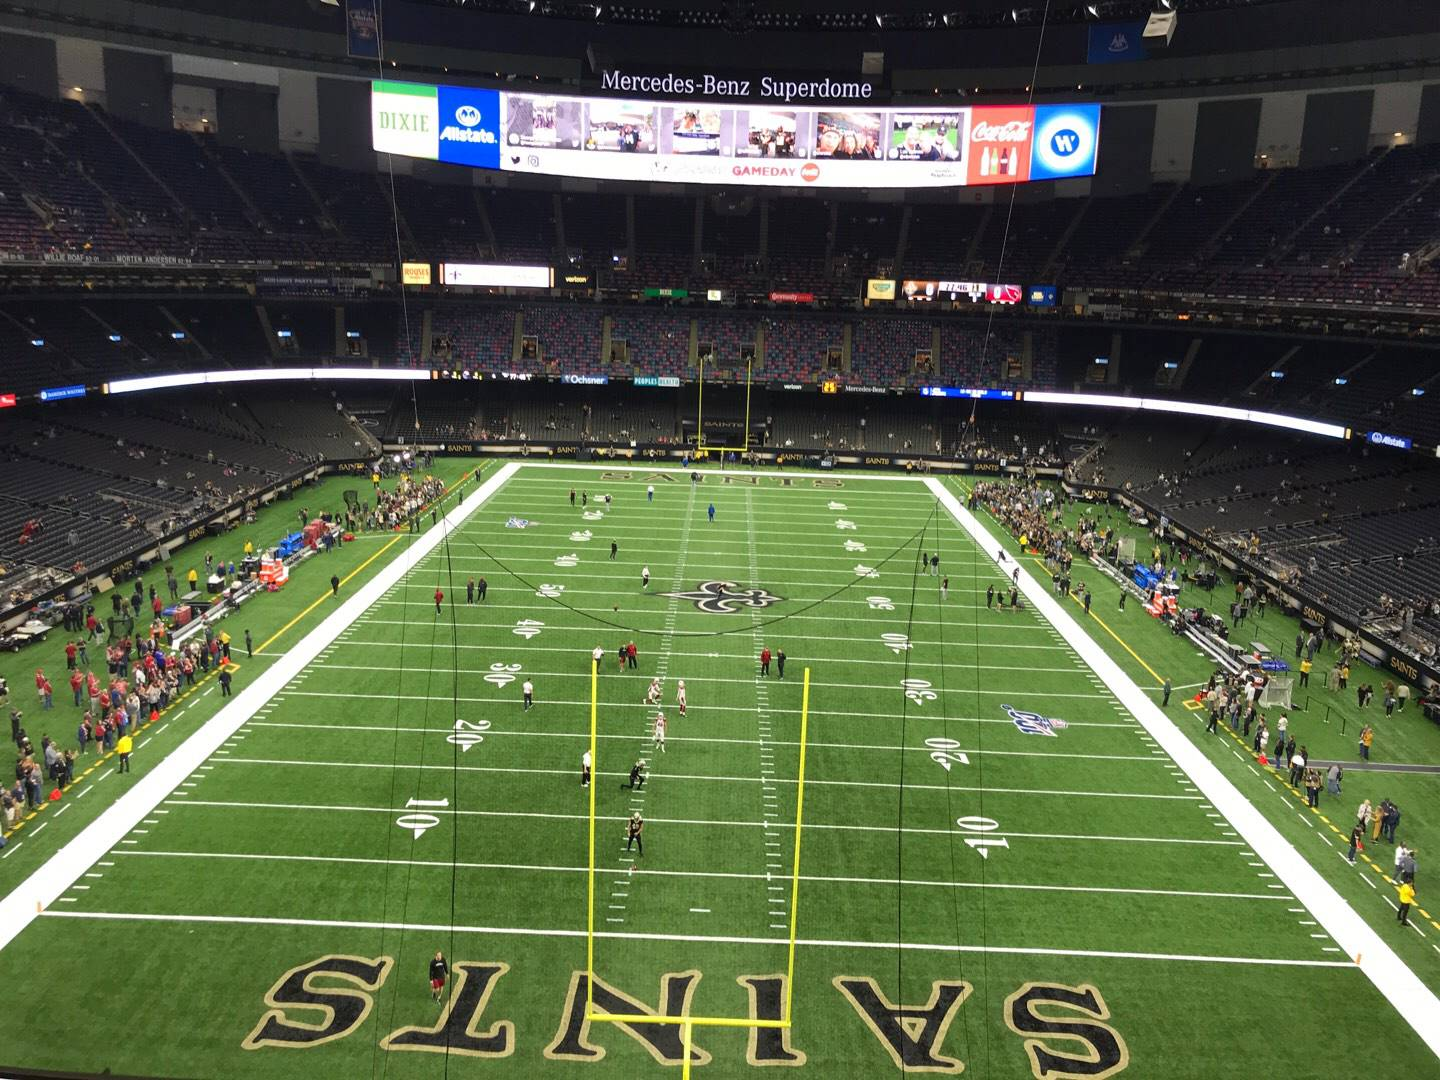 Mercedes-Benz Superdome Section 501 Row 5 Seat 10